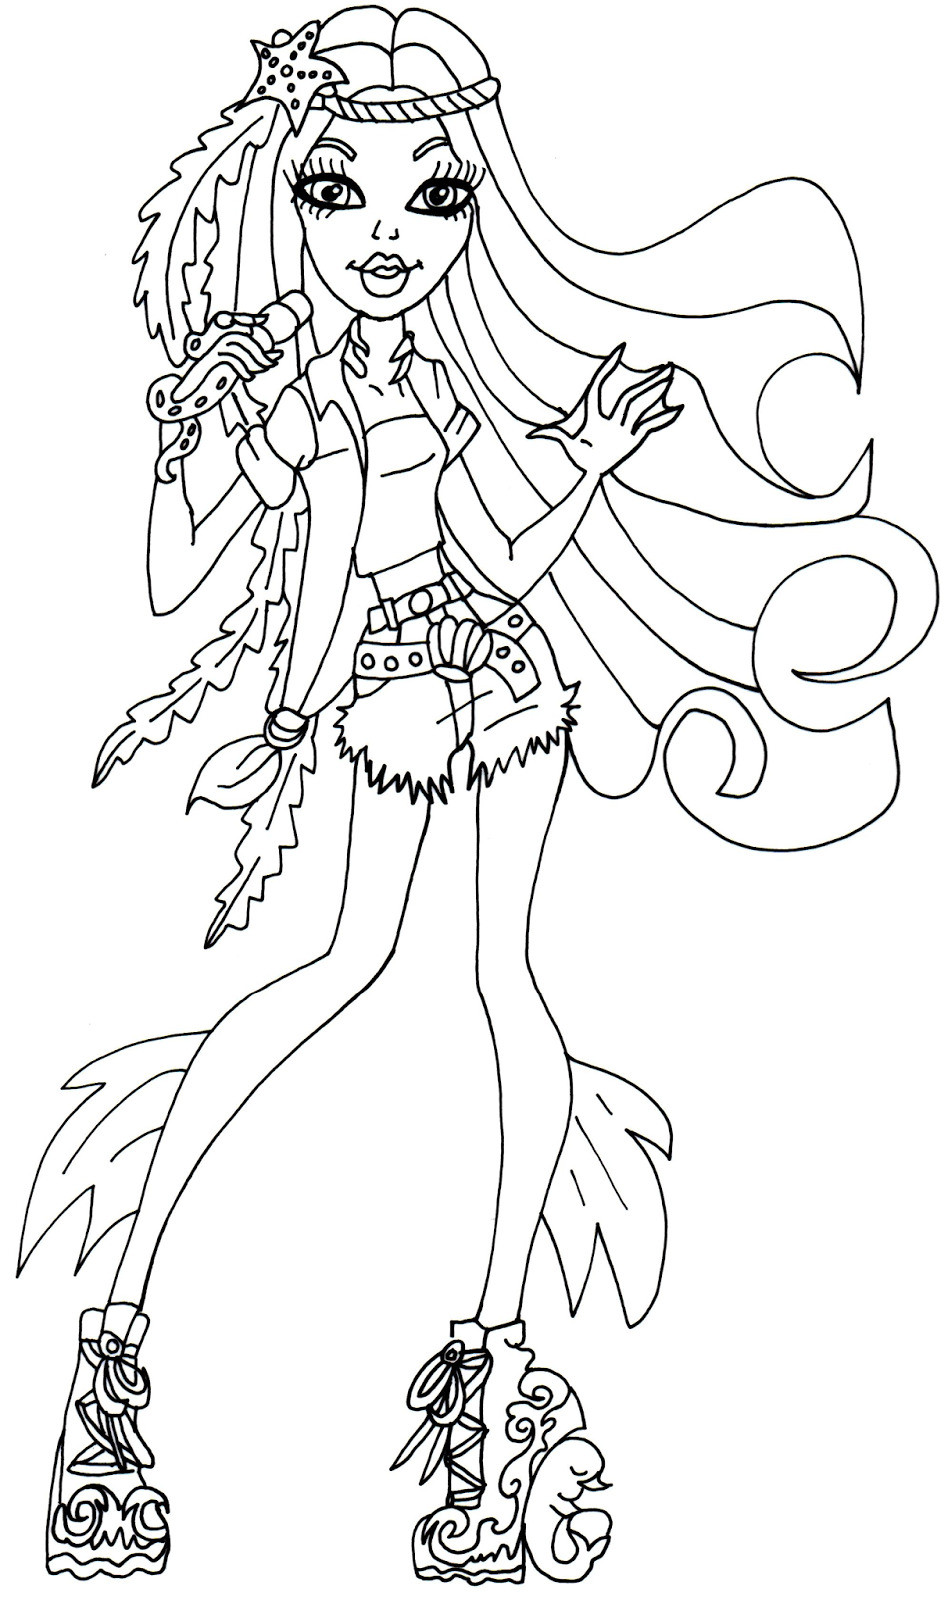 Monster High Ausmalbilder Clawdeen Inspirierend Free Printable Monster High Coloring Page for Madison Fear Luxus Galerie